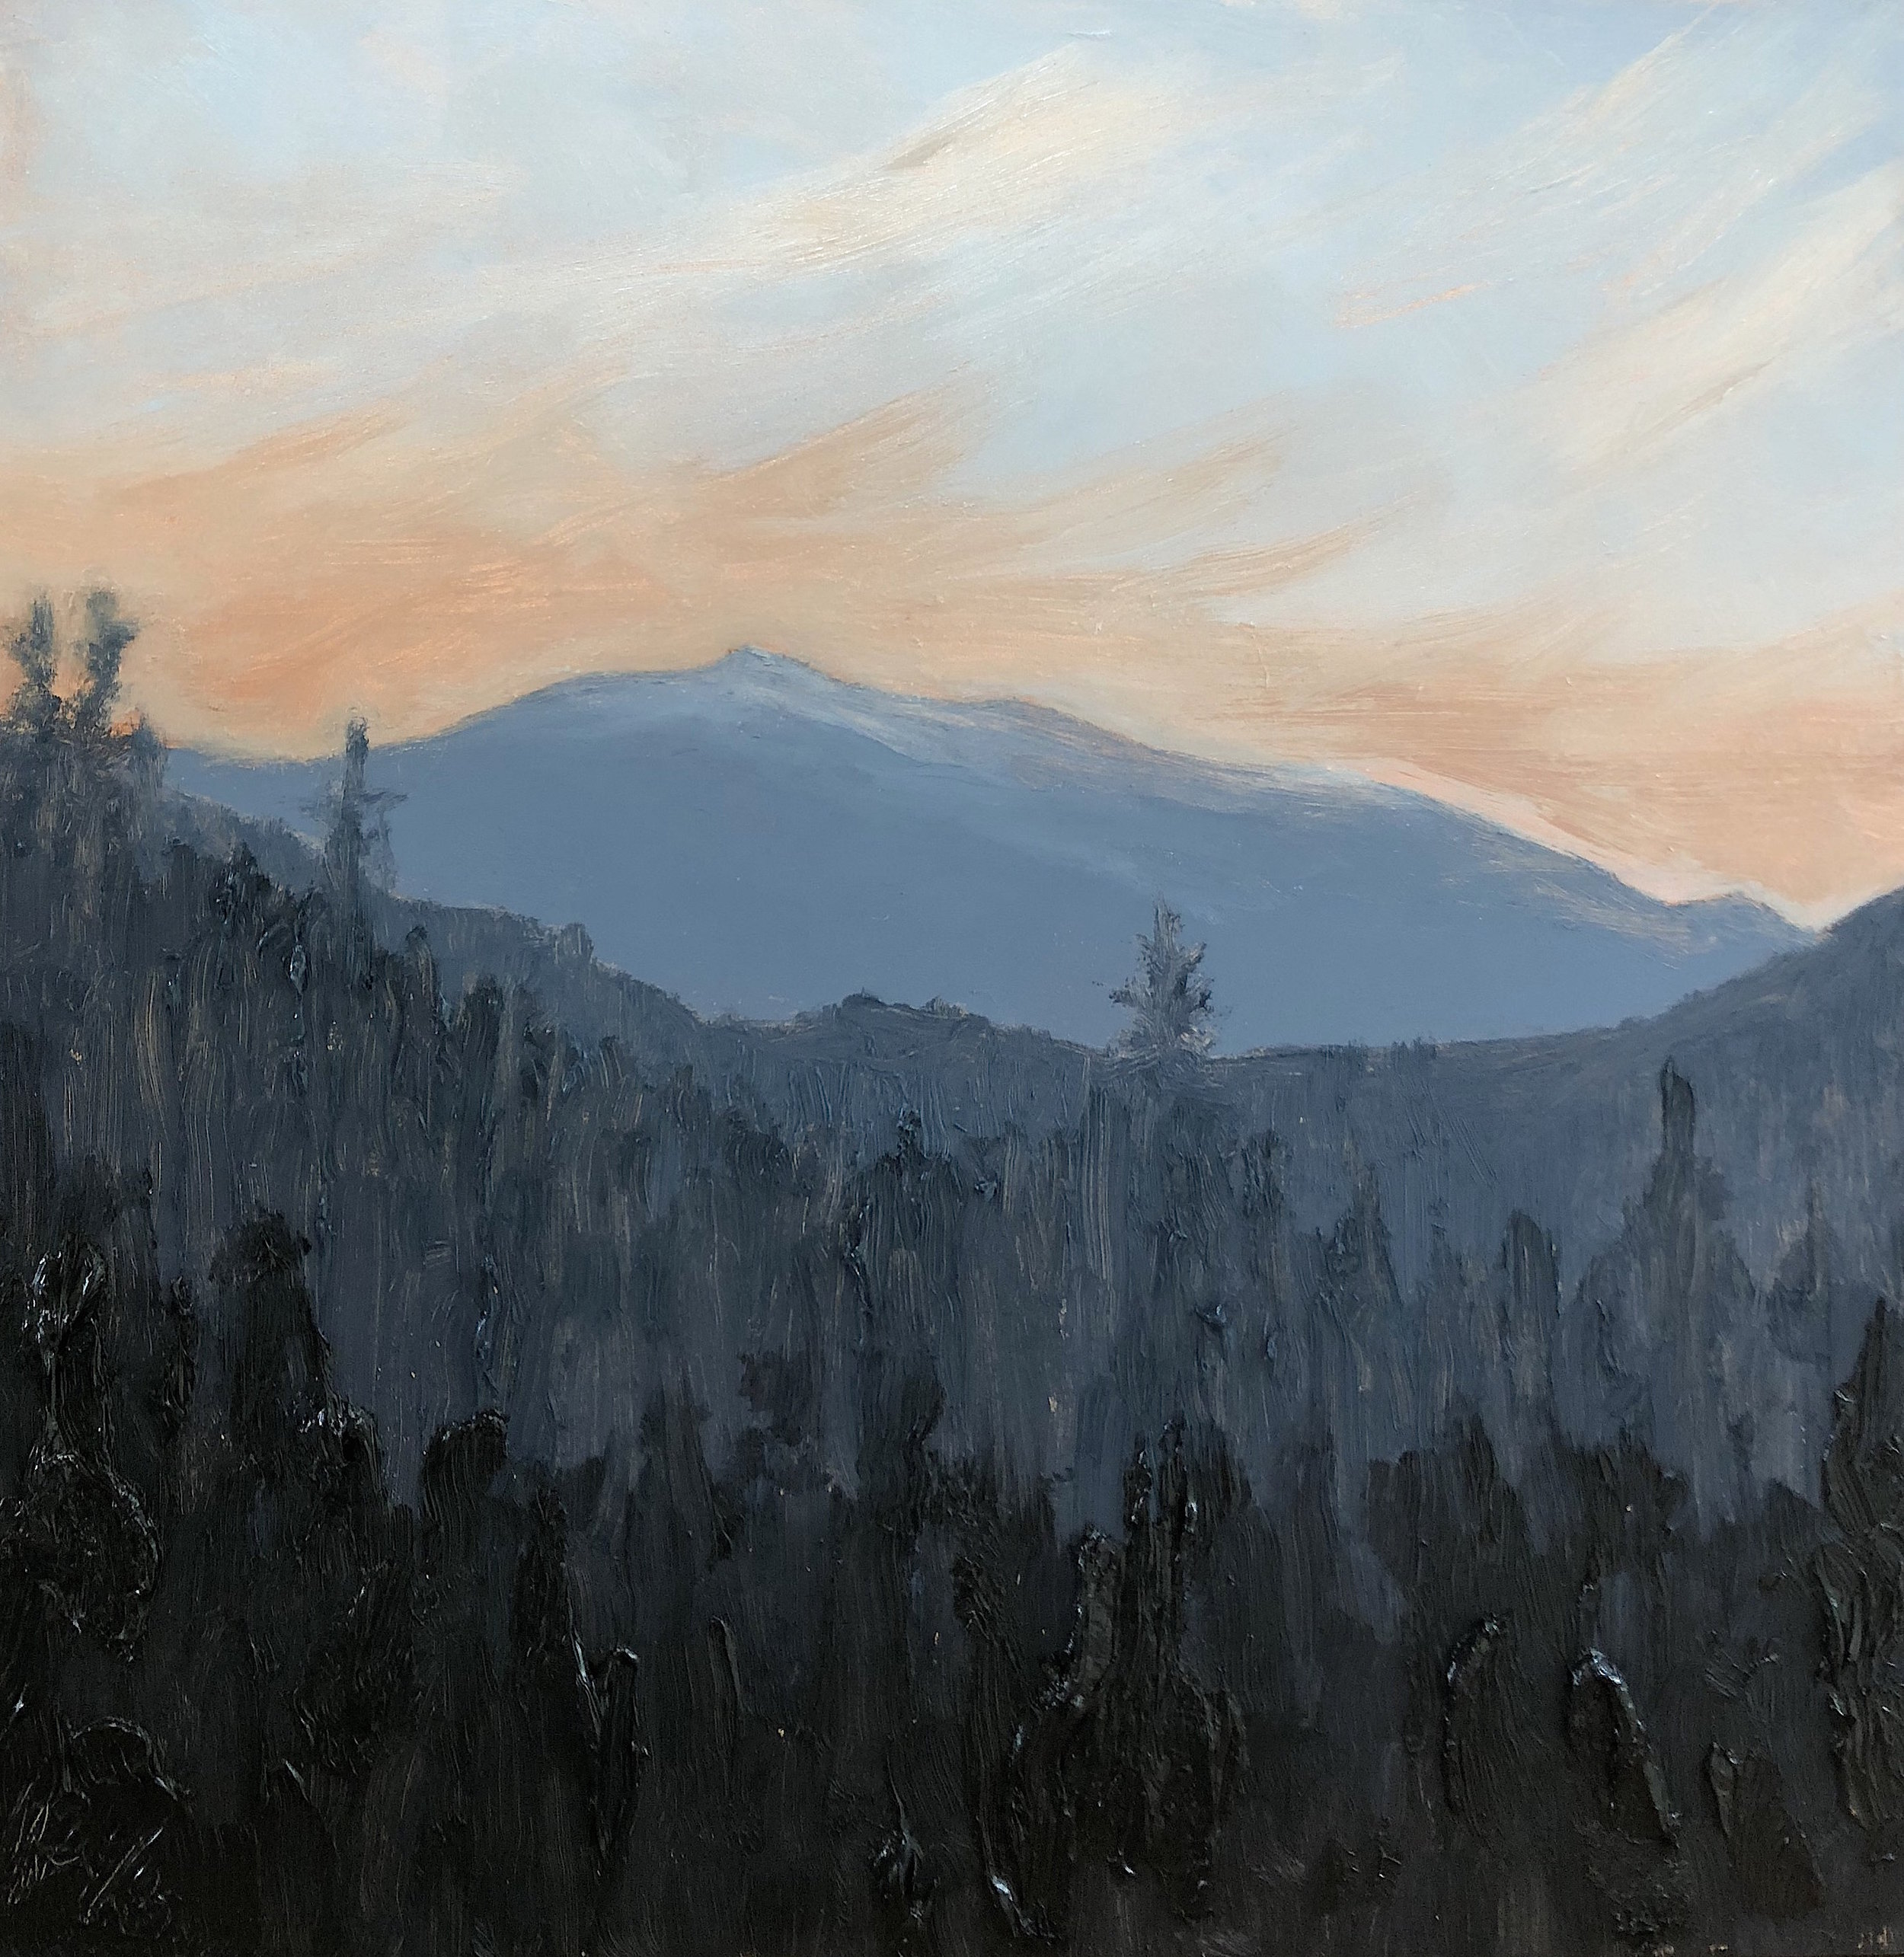 Mt. Washington Summer Solstice Sunset 2018, from the 36 Views of Mt. Washington series, oil on board, 12 by 12 inches, 2018, $1000